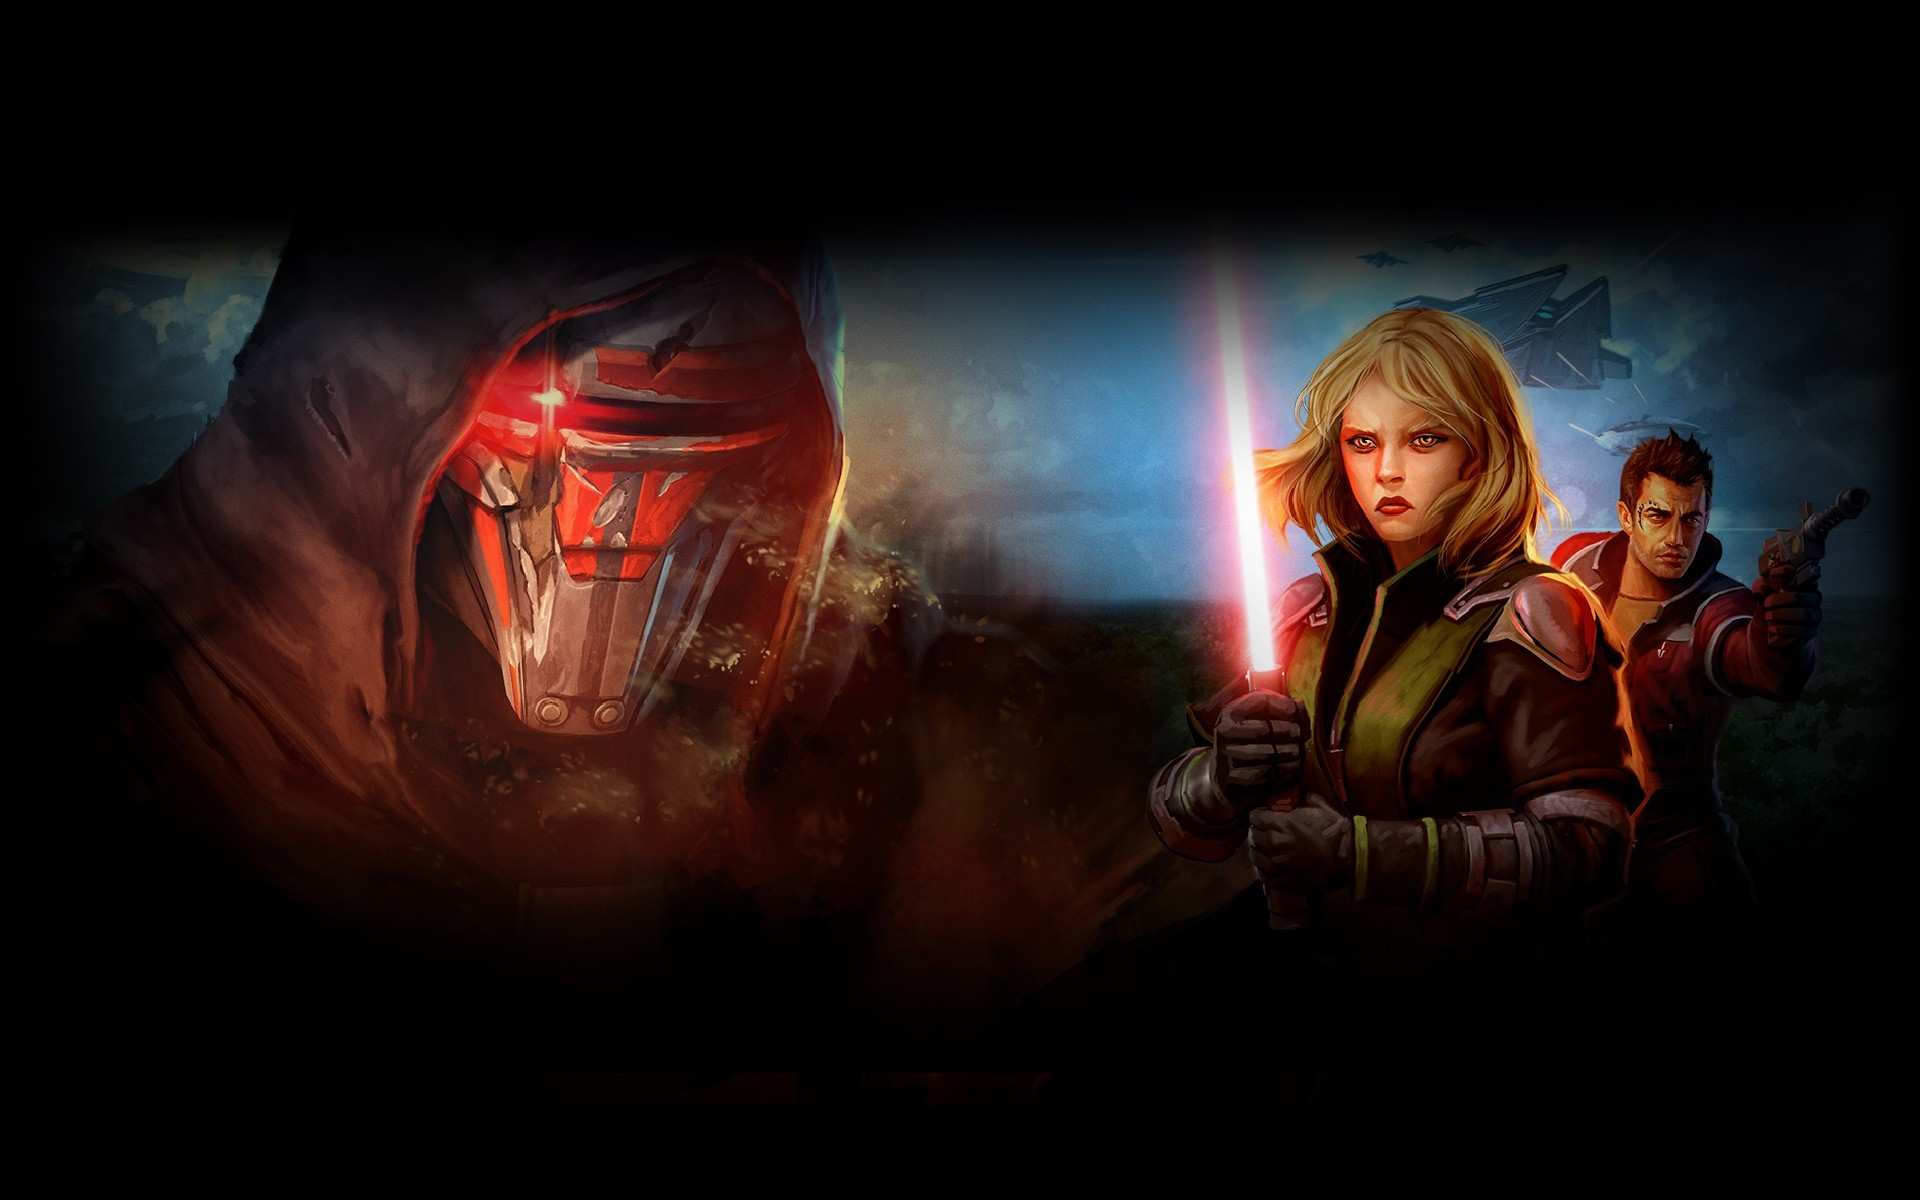 1920x1200 Games Wallpaper: Swtor Wallpaper Revan Wallpapers Phone with High .